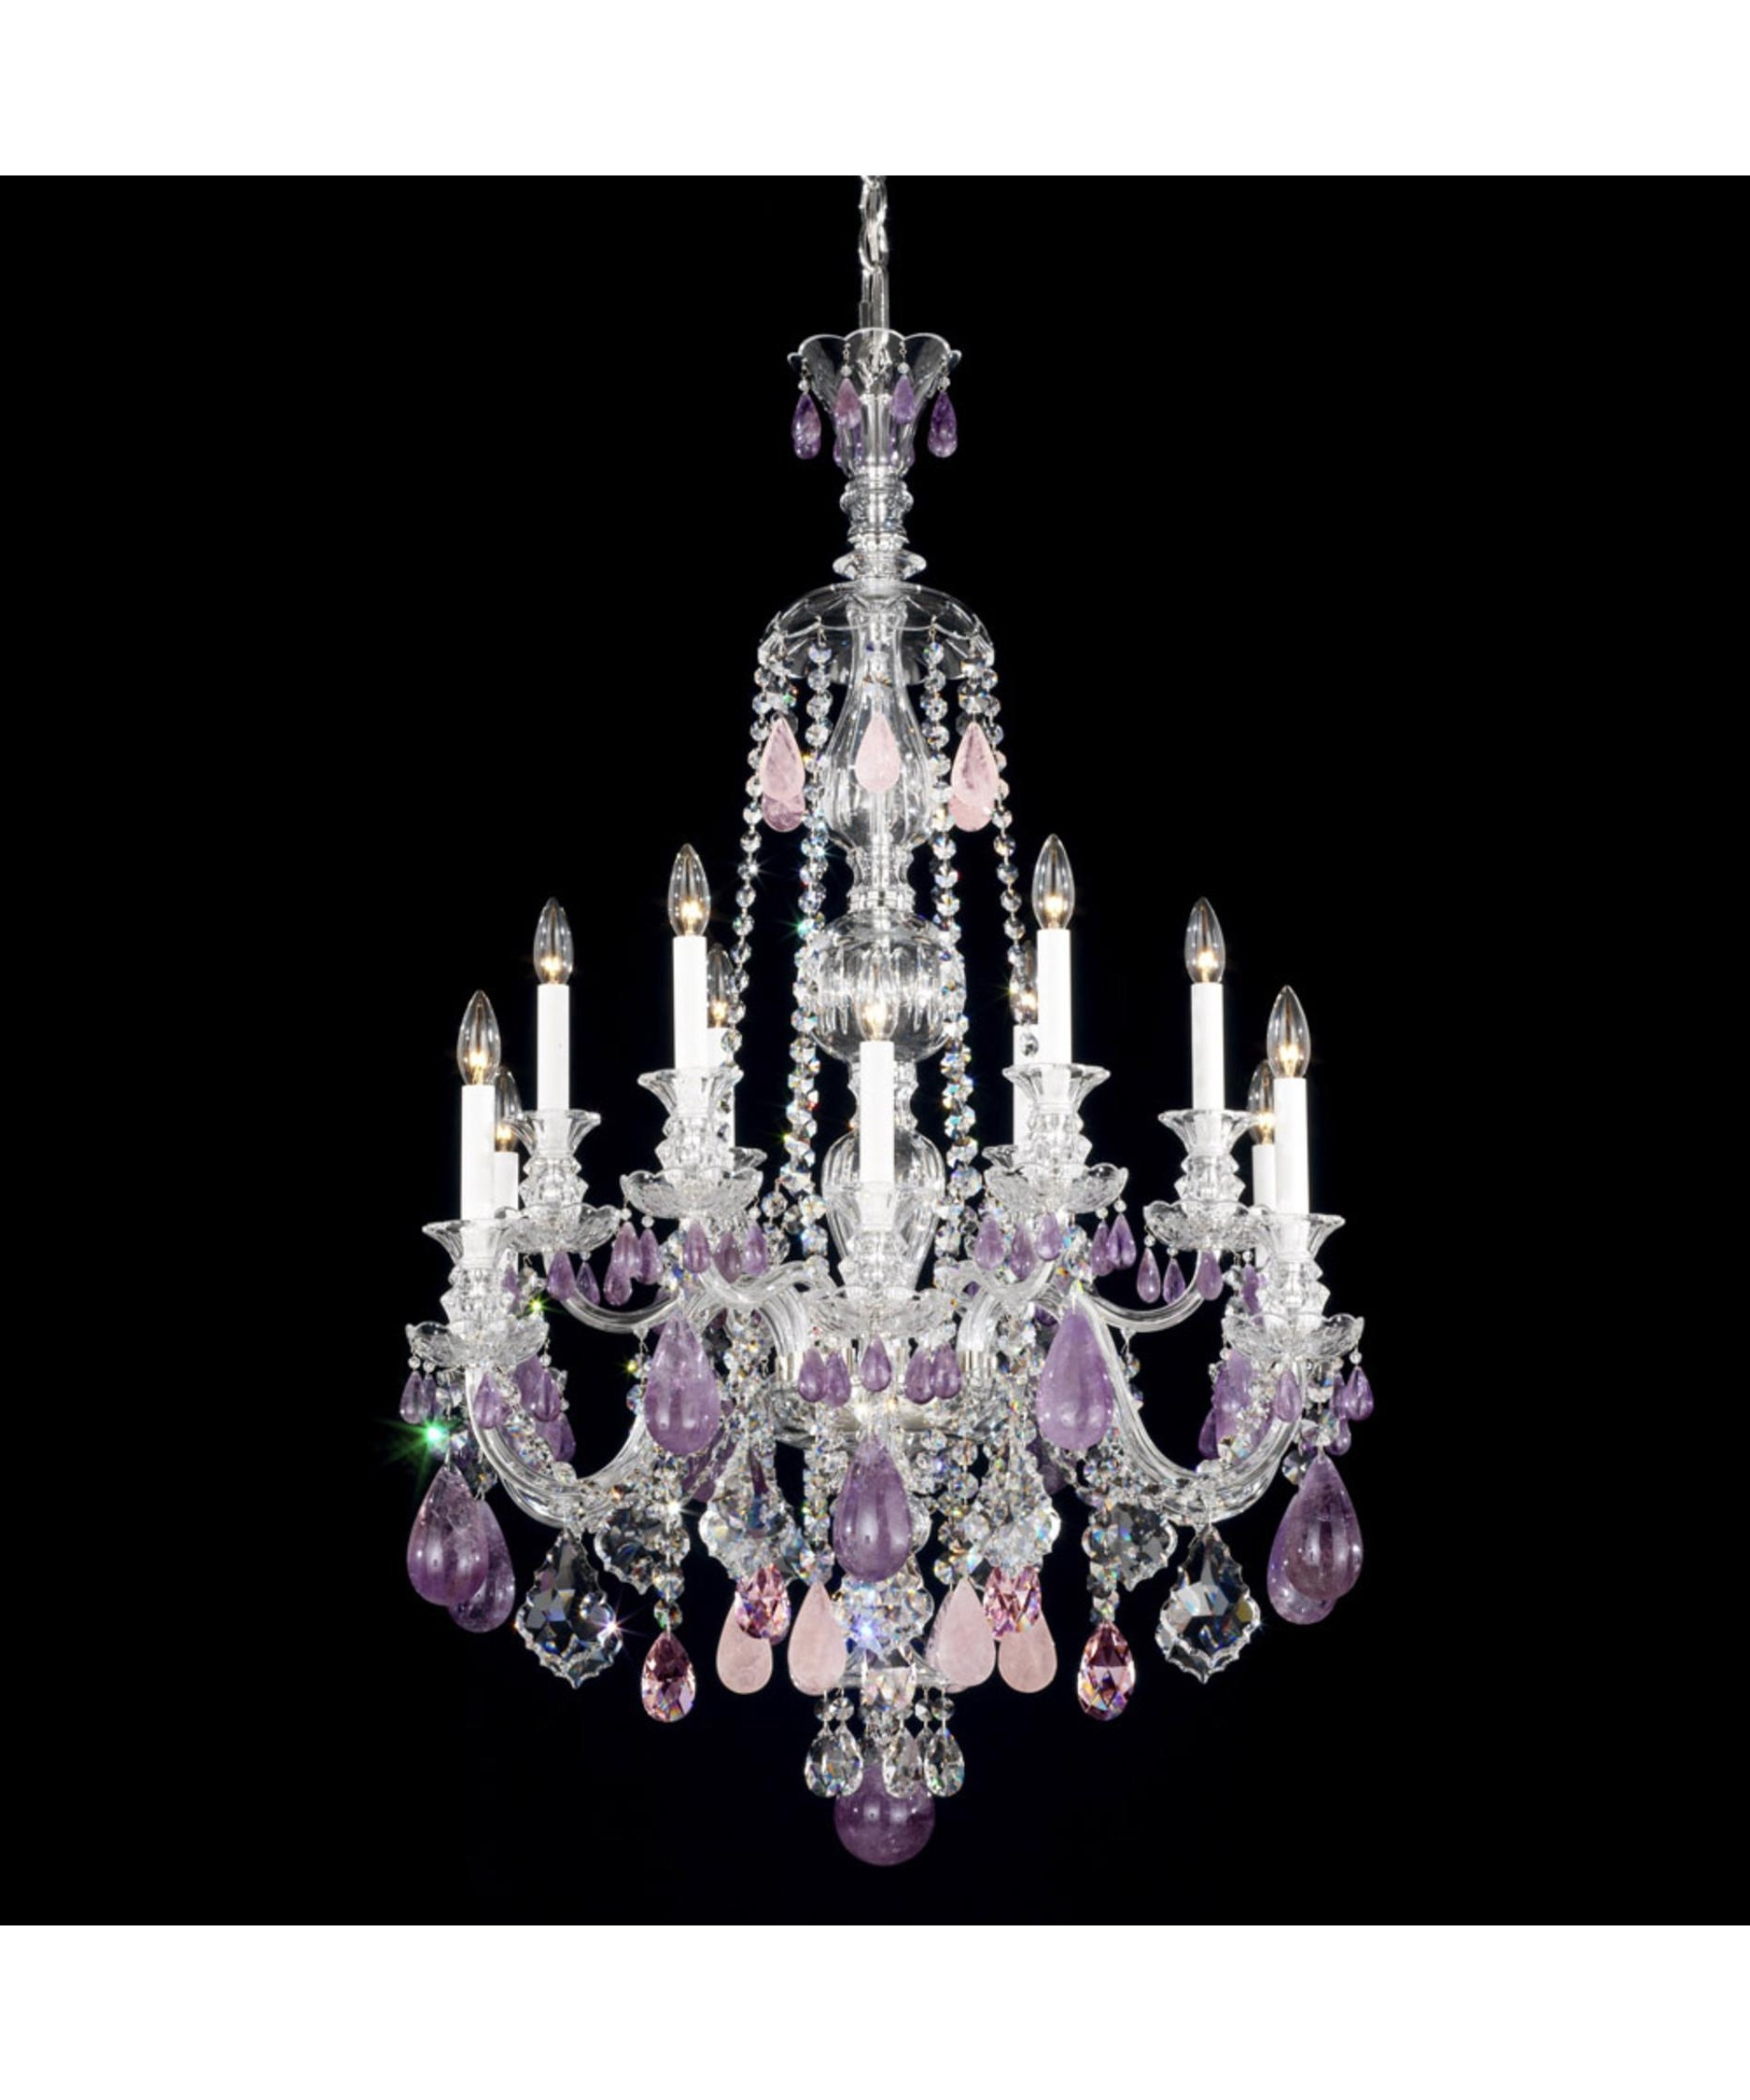 Widely Used Schonbek 5508 Hamilton Rock Crystal 30 Inch Wide 12 Light Chandelier Inside Purple Crystal Chandelier Lights (View 3 of 15)